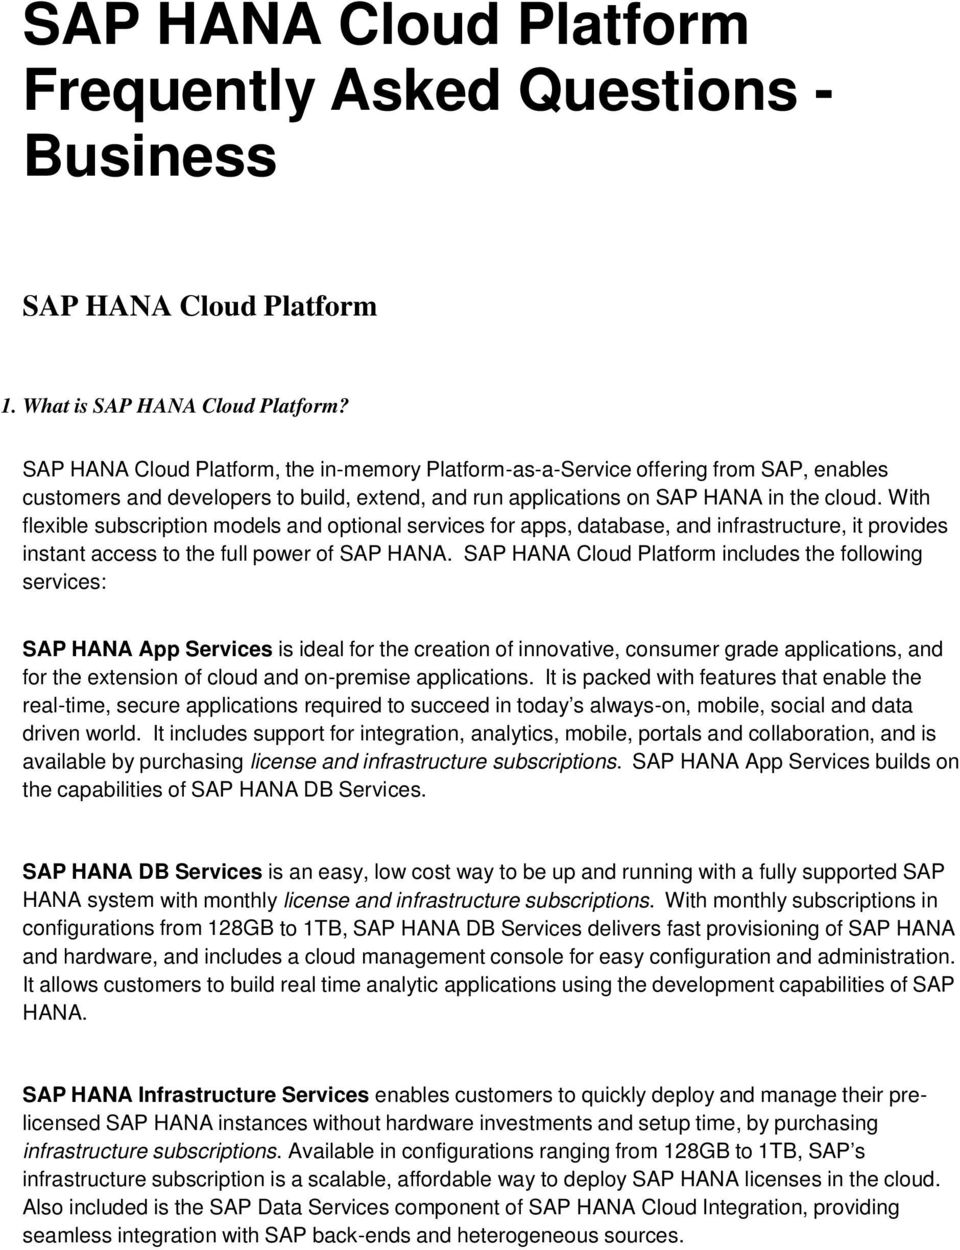 With flexible subscription models and optional services for apps, database, and infrastructure, it provides instant access to the full power of SAP HANA.